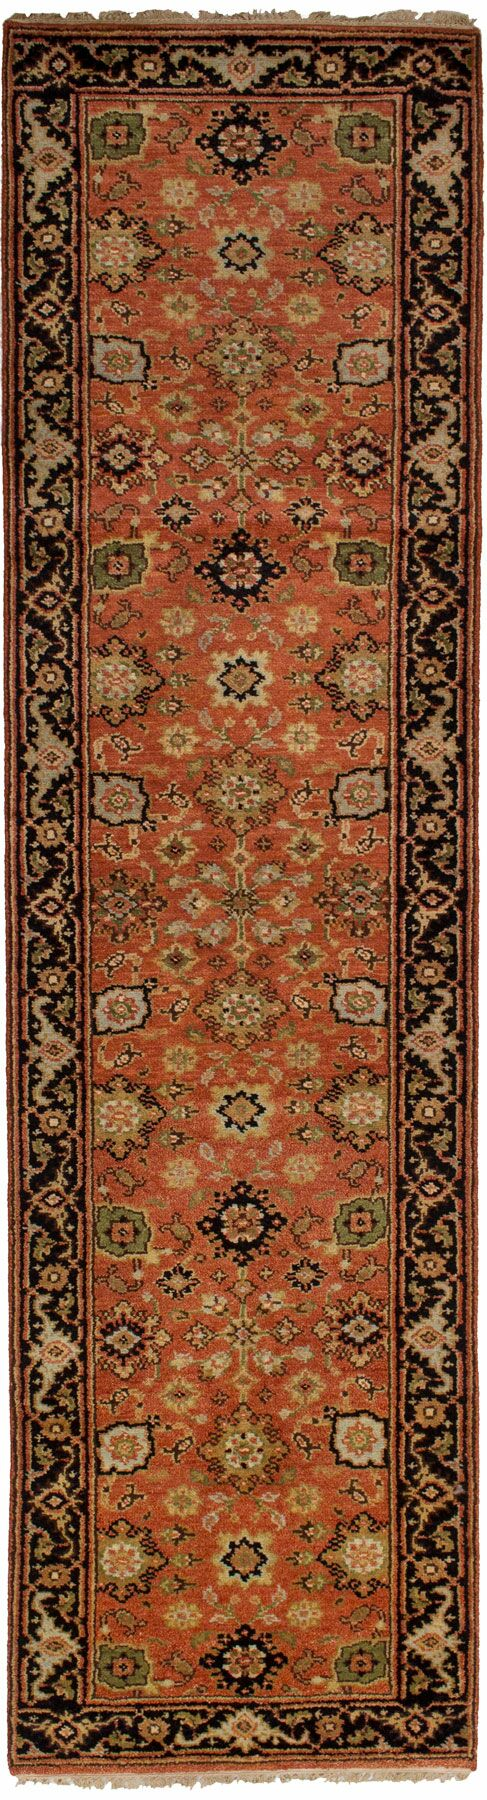 One-of-a-Kind Doerr Hand Knotted Wool Copper Area Rug Rug Size: Runner 2'7